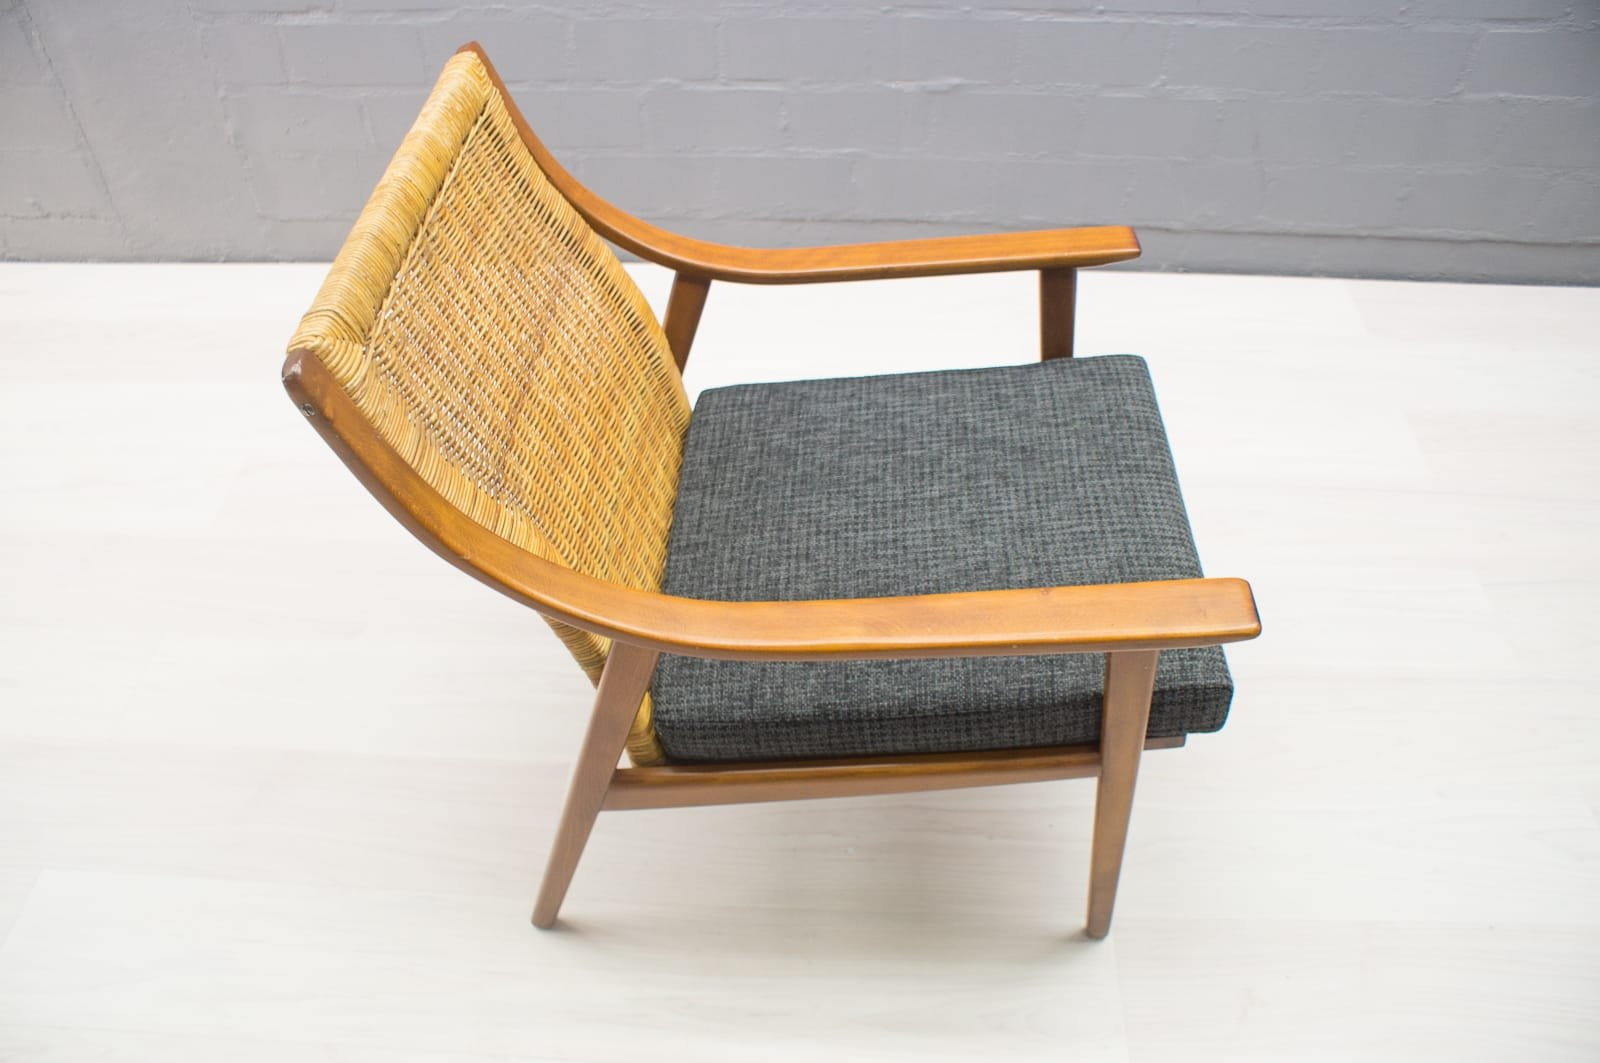 Mid century scandinavian easy chair 1950s for sale at pamono for Z chair mid century